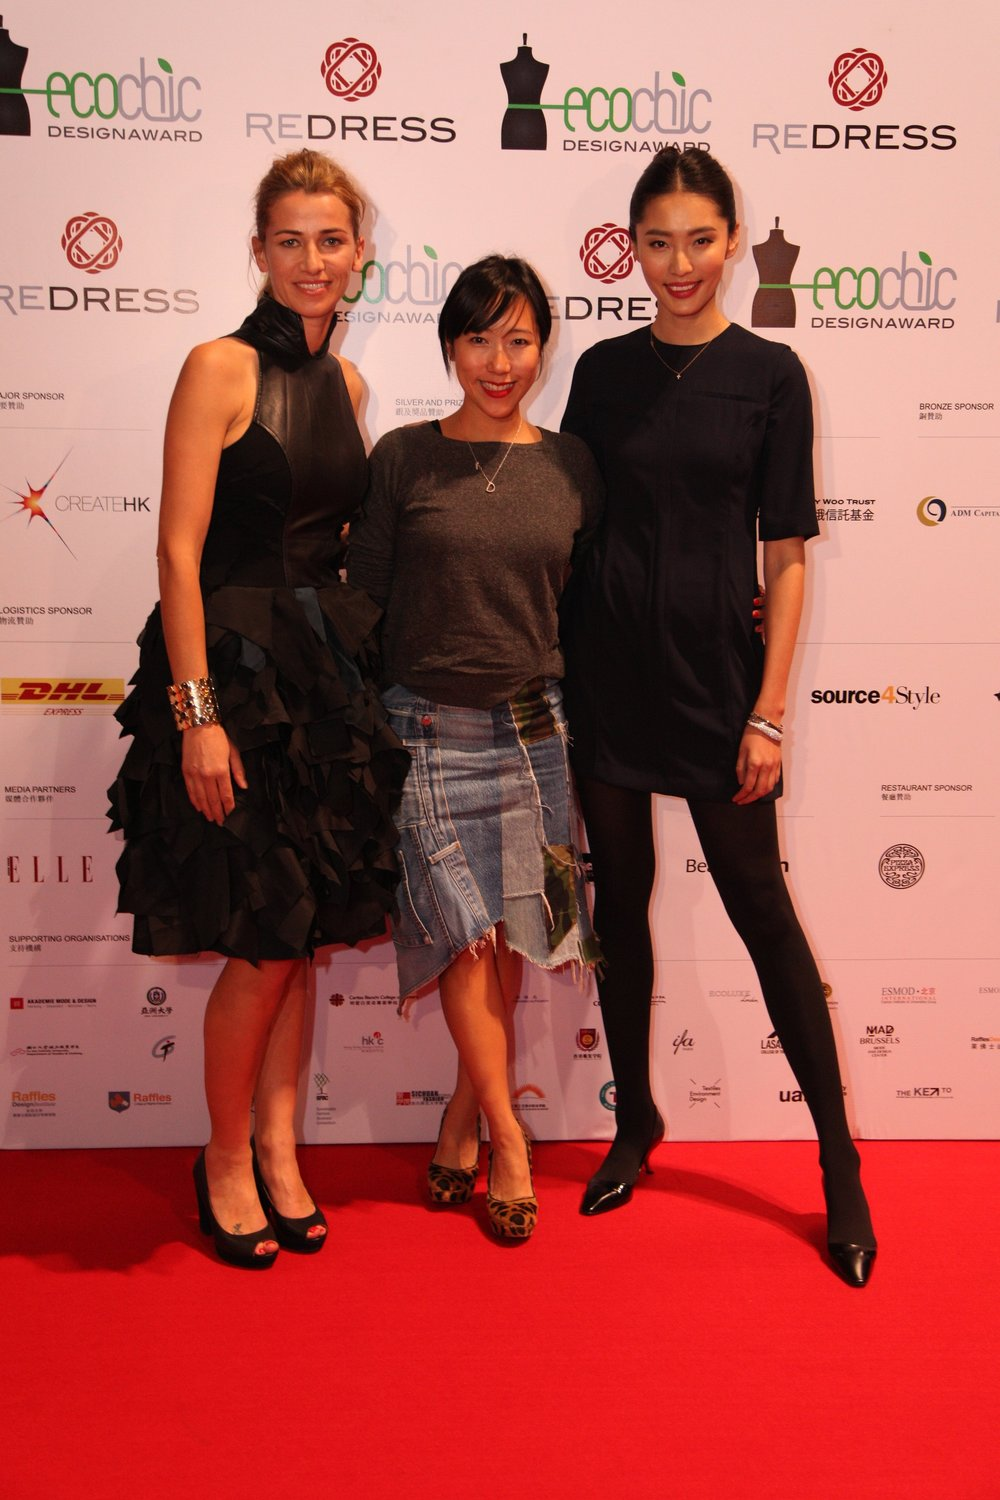 Redress Design Award stylist Denise Ho and ambassador Bonnie Chen attend the Redress Design Award 2013 Grand Final Show